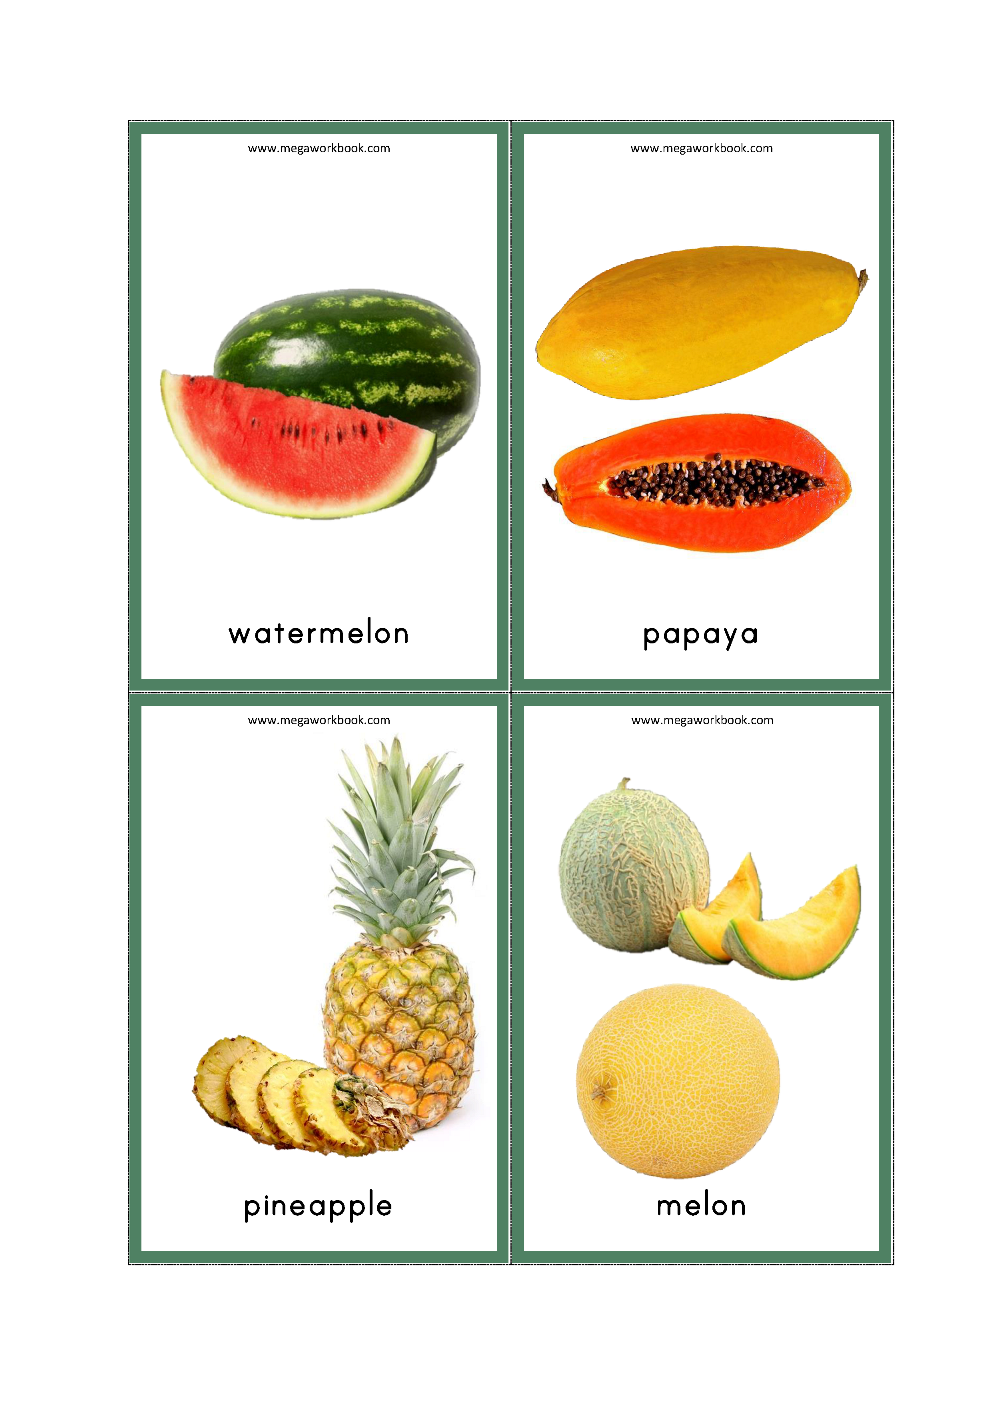 Free Printable Fruits Flashcards For Preschool And Kindergarten Kids Fruits Names With Picture Megawor Fruits For Kids Fruits Name With Picture Fruit Names